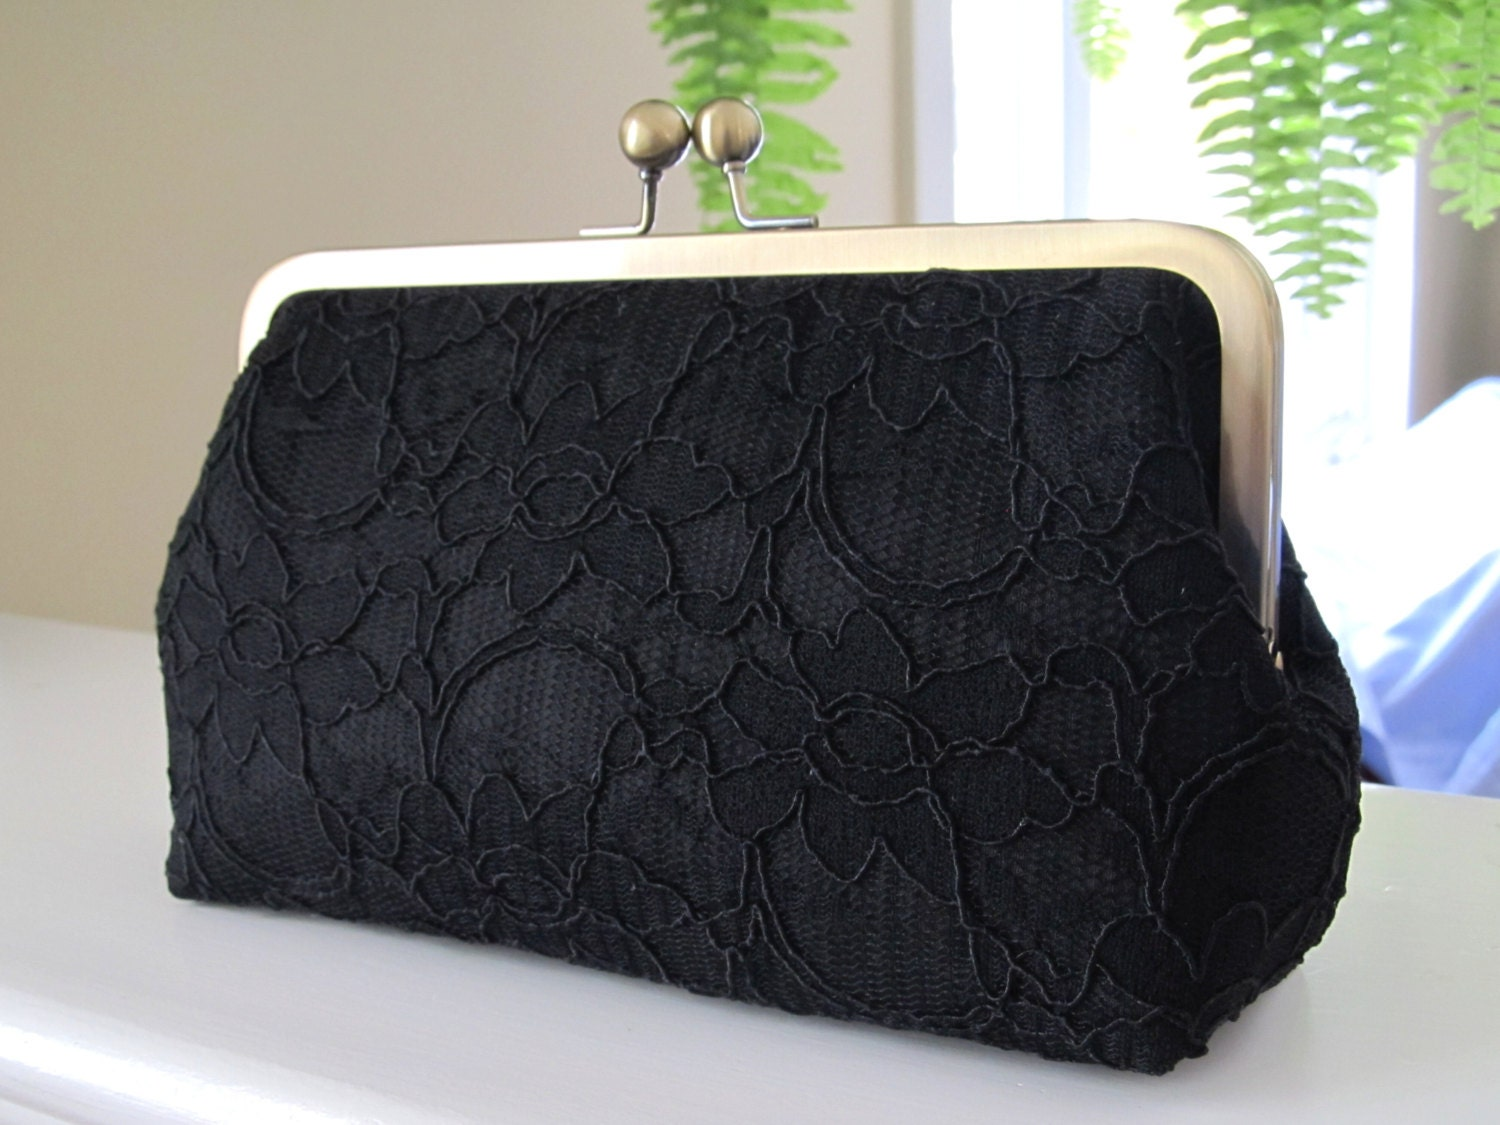 Bridal Silk And Lace Clutch Black,Bridal Accessories,Wedding Clutch,Bridal Clutch-Bridesmaid Clutches